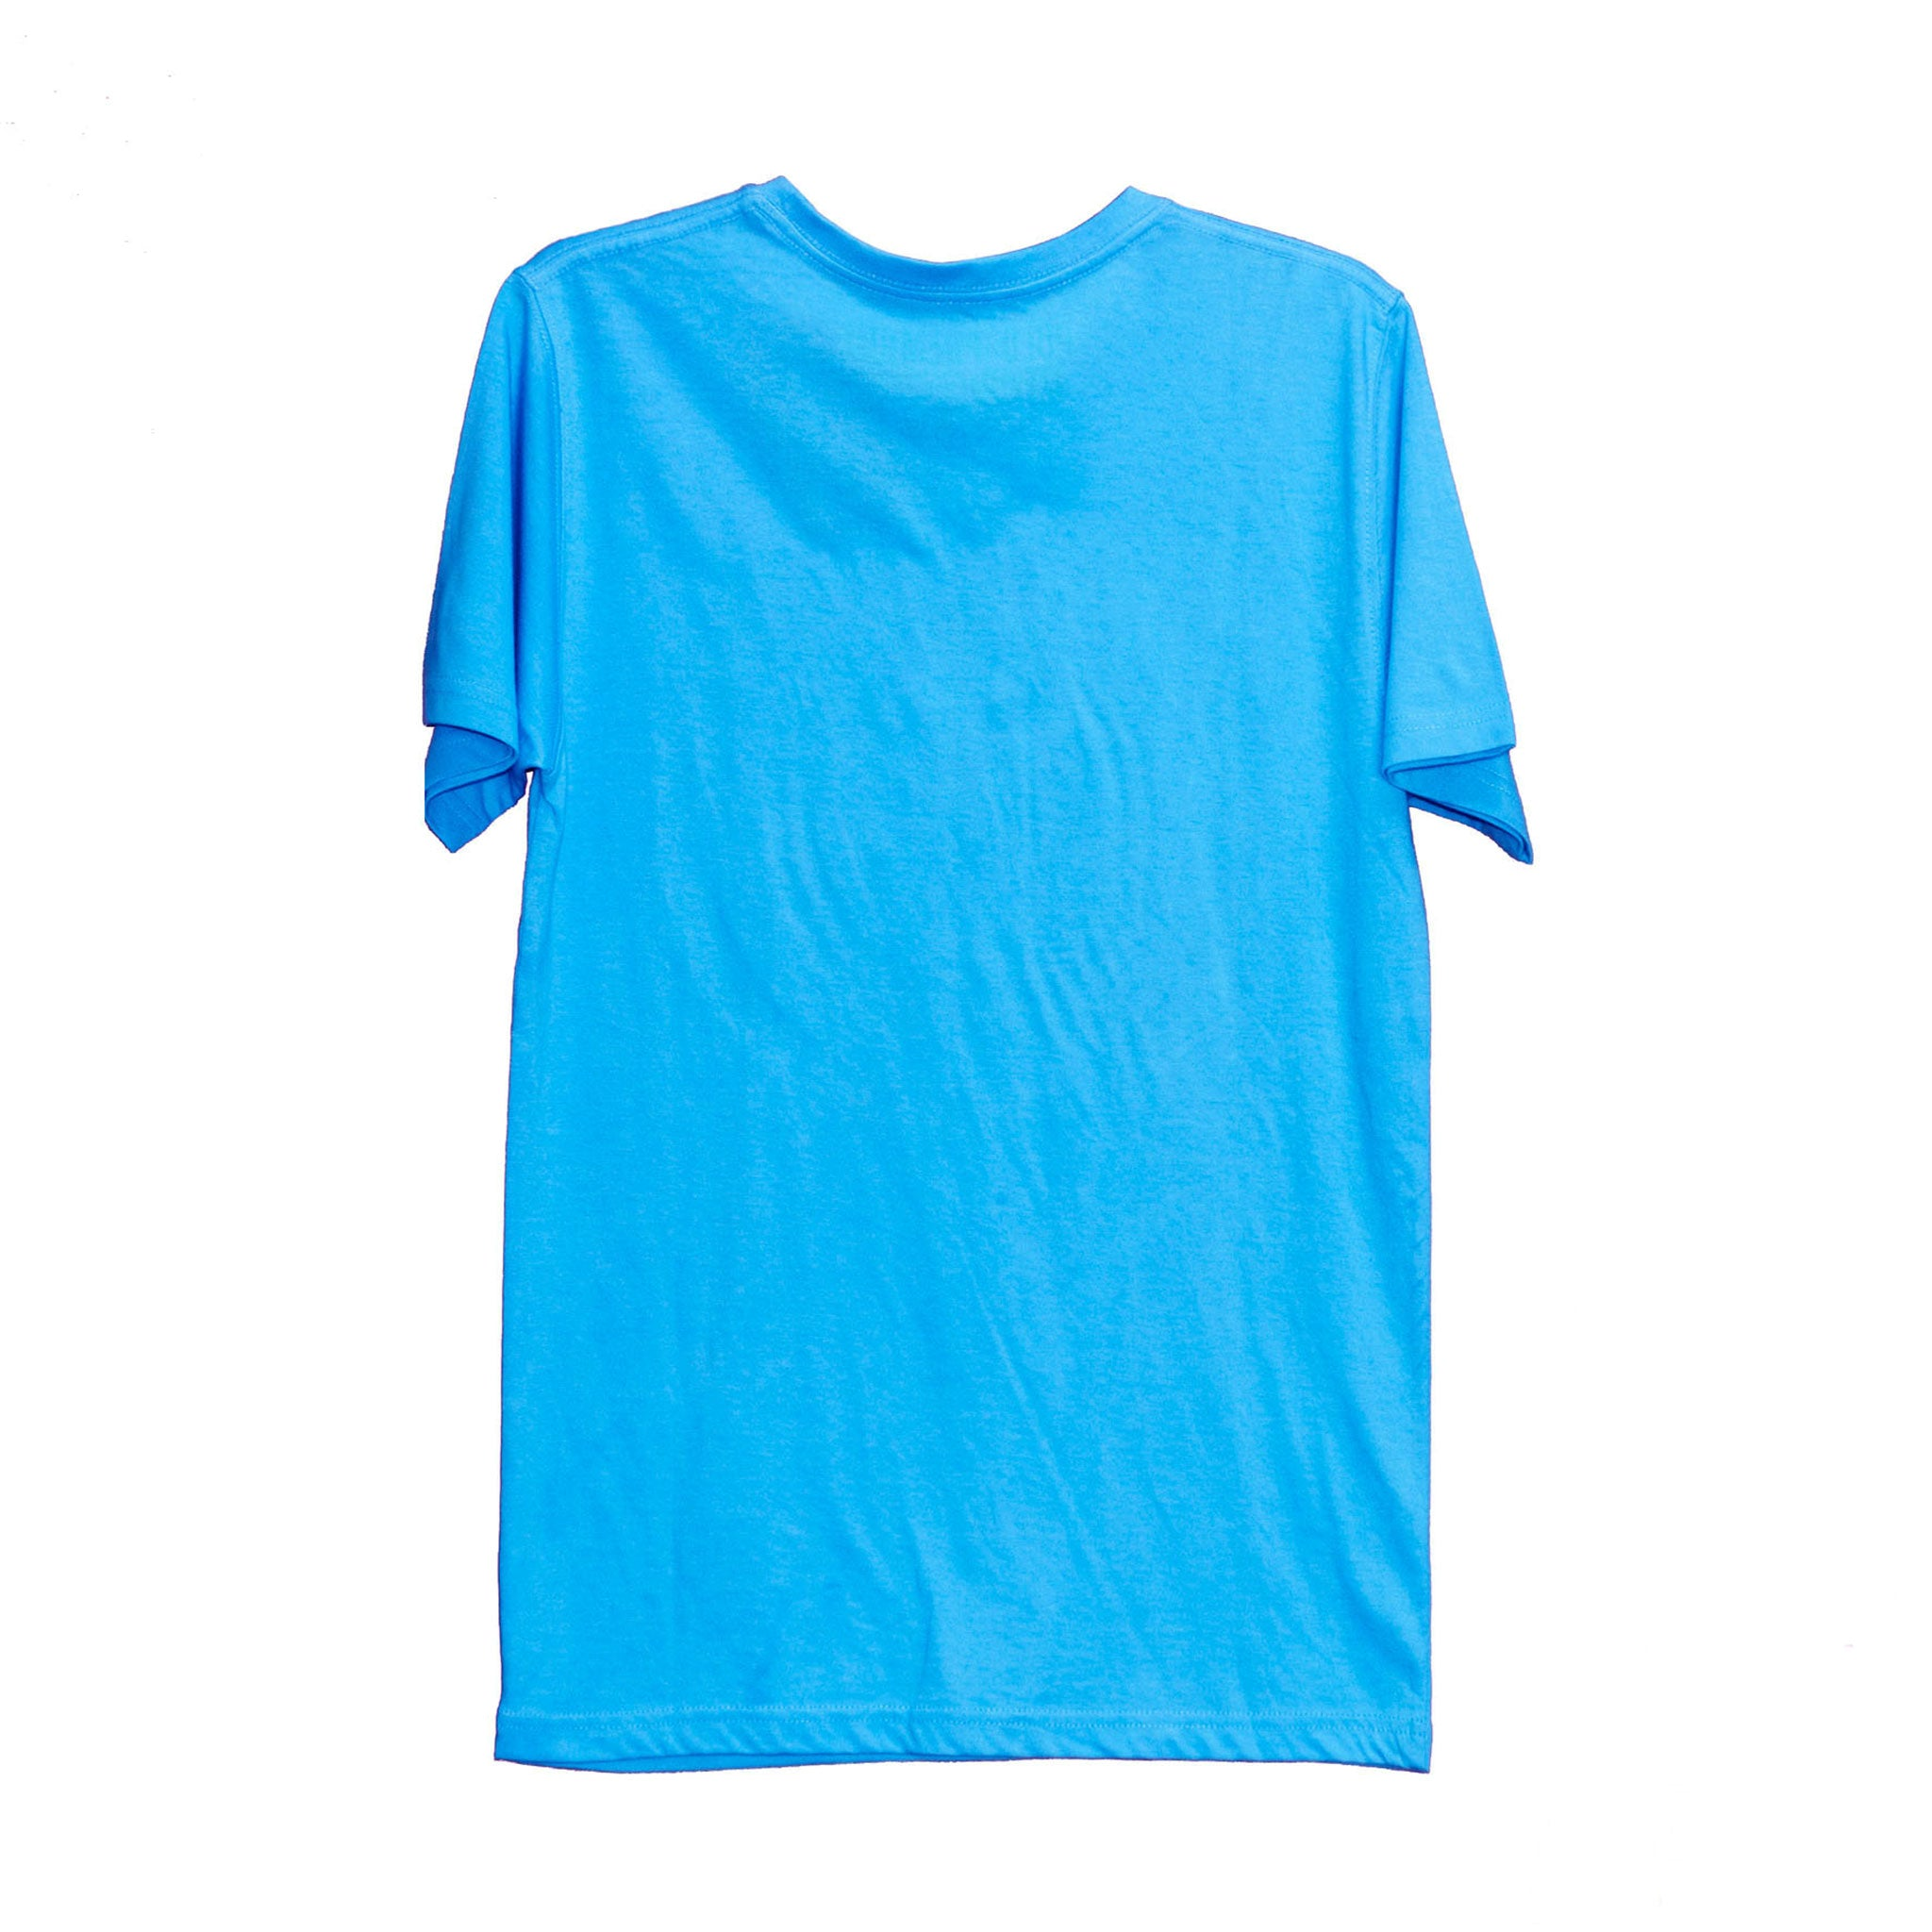 MEN'S S/S PRINTED TEE - AQUA BLUE / POLO ROYALE LOGO